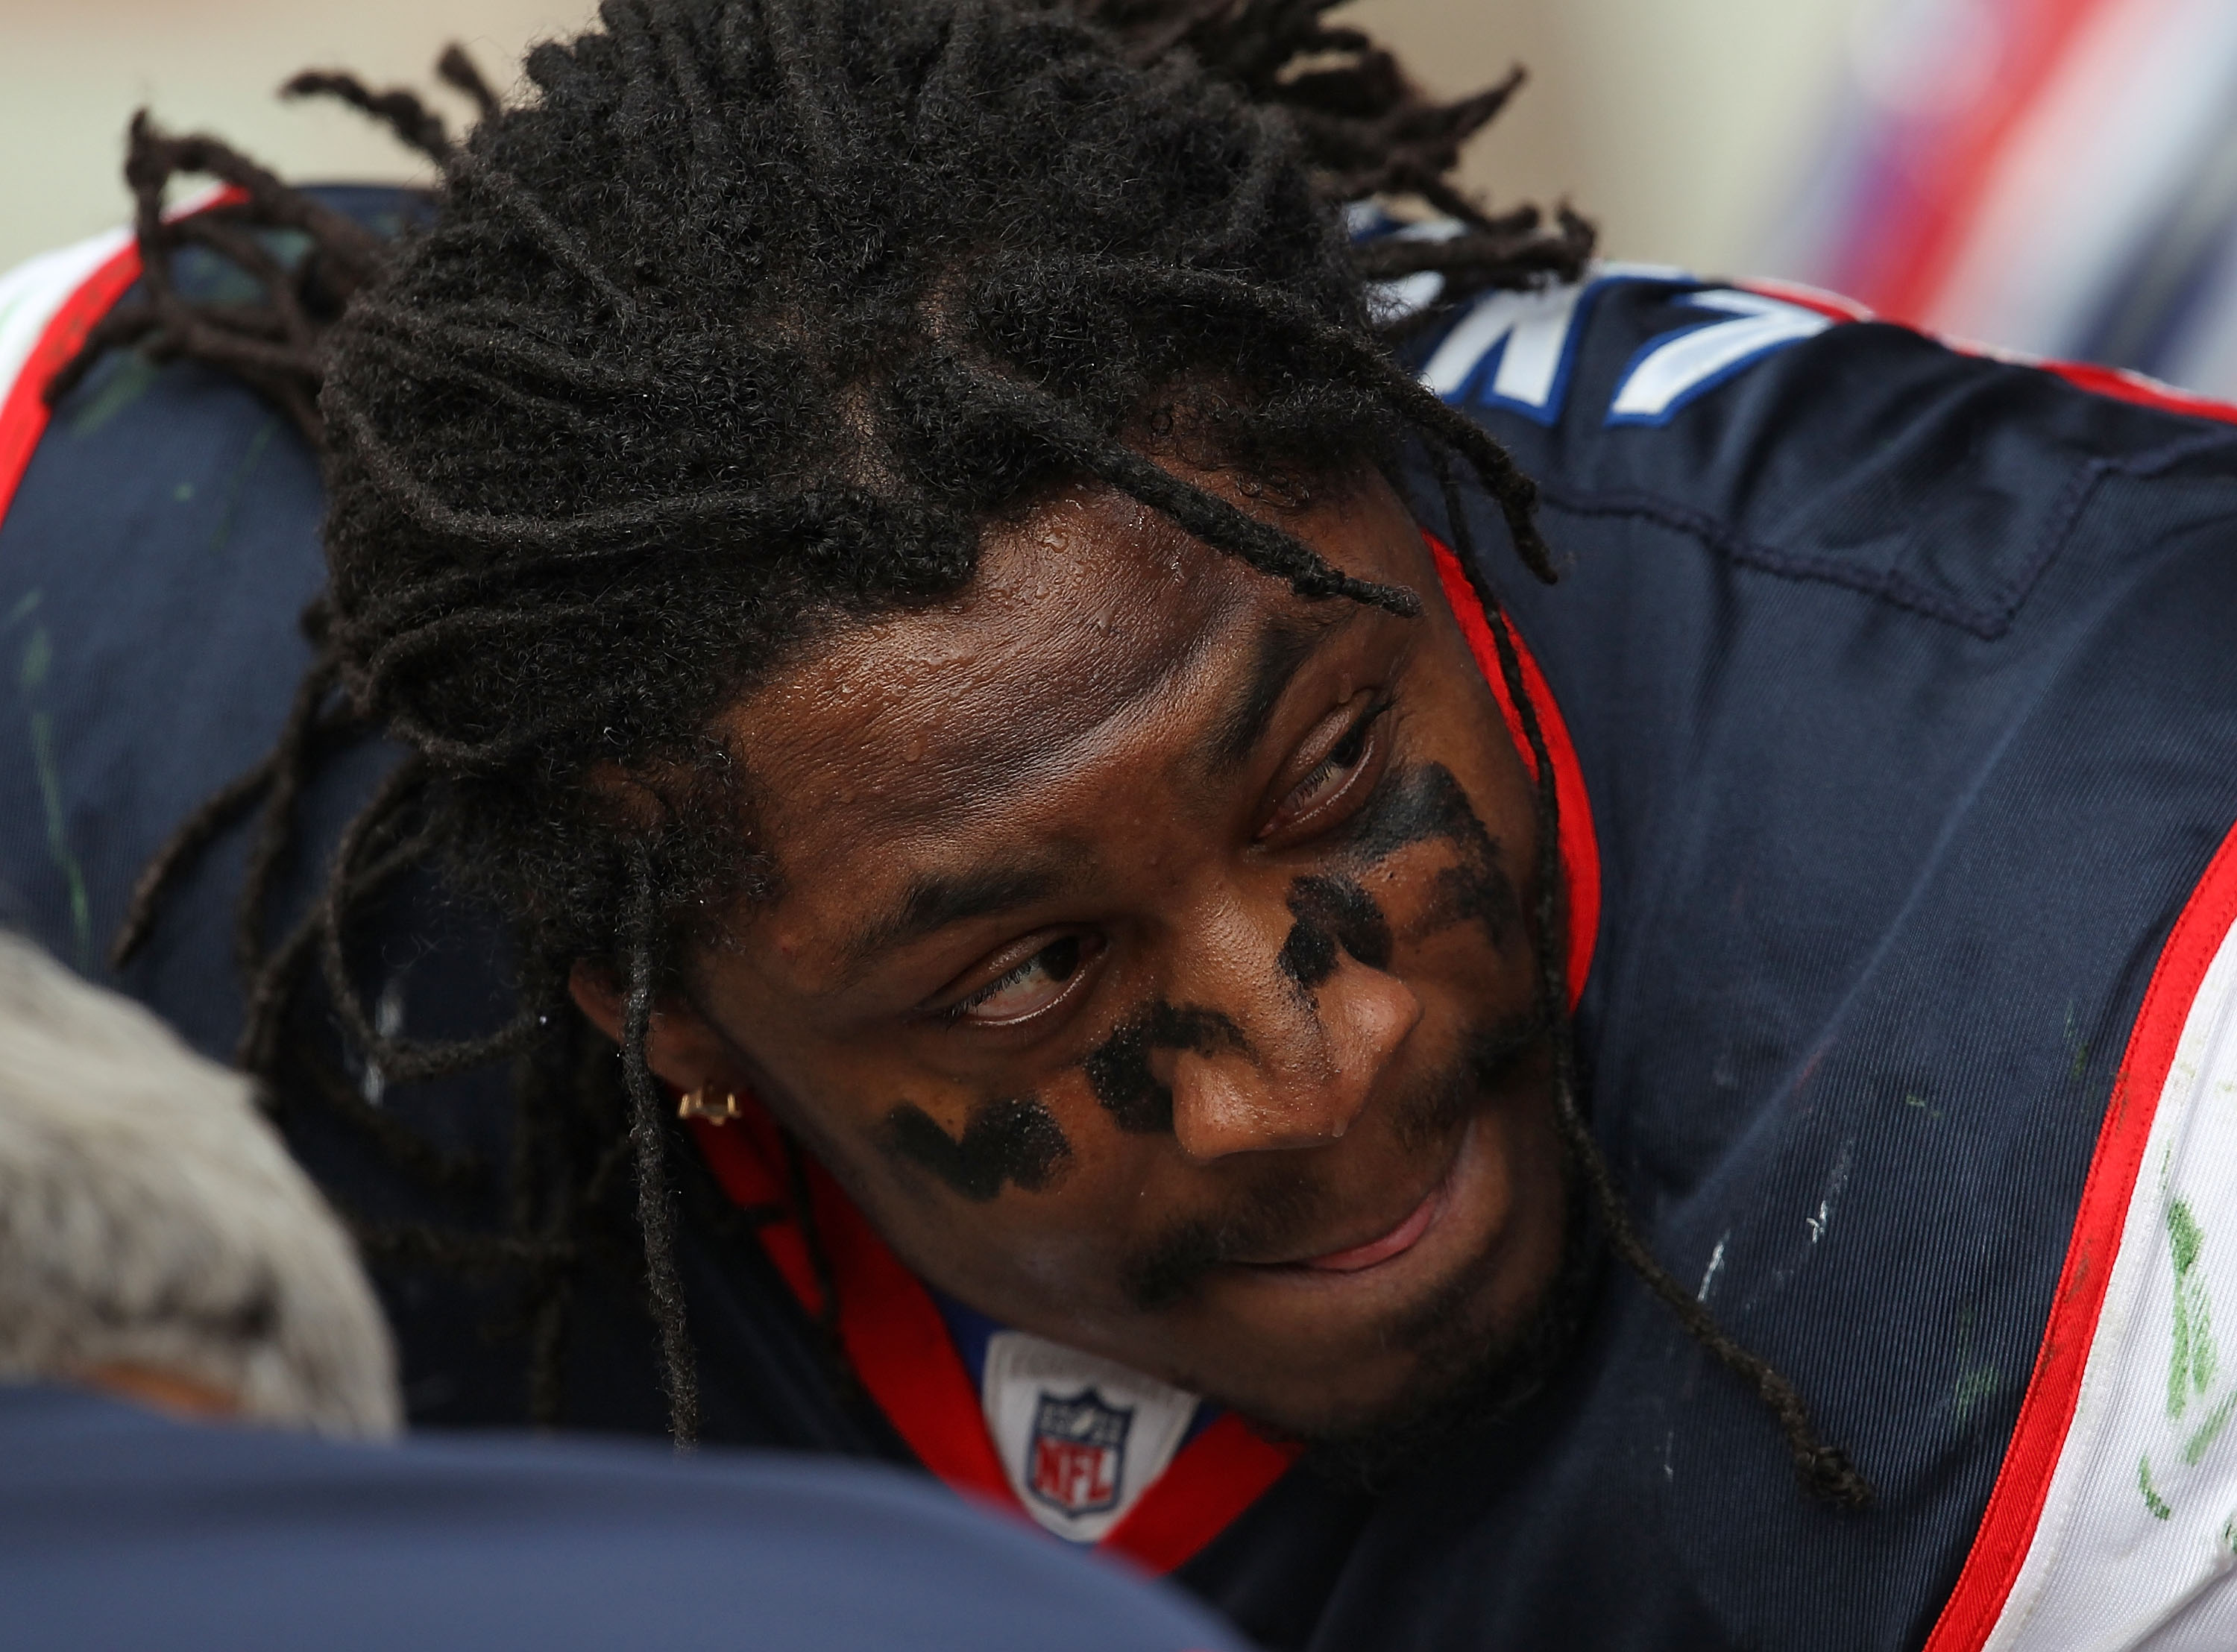 GREEN BAY, WI - SEPTEMBER 19: Marshawn Lynch #23 of the Buffalo Bills listens to coaches and teammates on the sidelines during a game against the Green Bay Packers at Lambeau Field on September 19, 2010 in Green Bay, Wisconsin. The Packers defeated the Bi